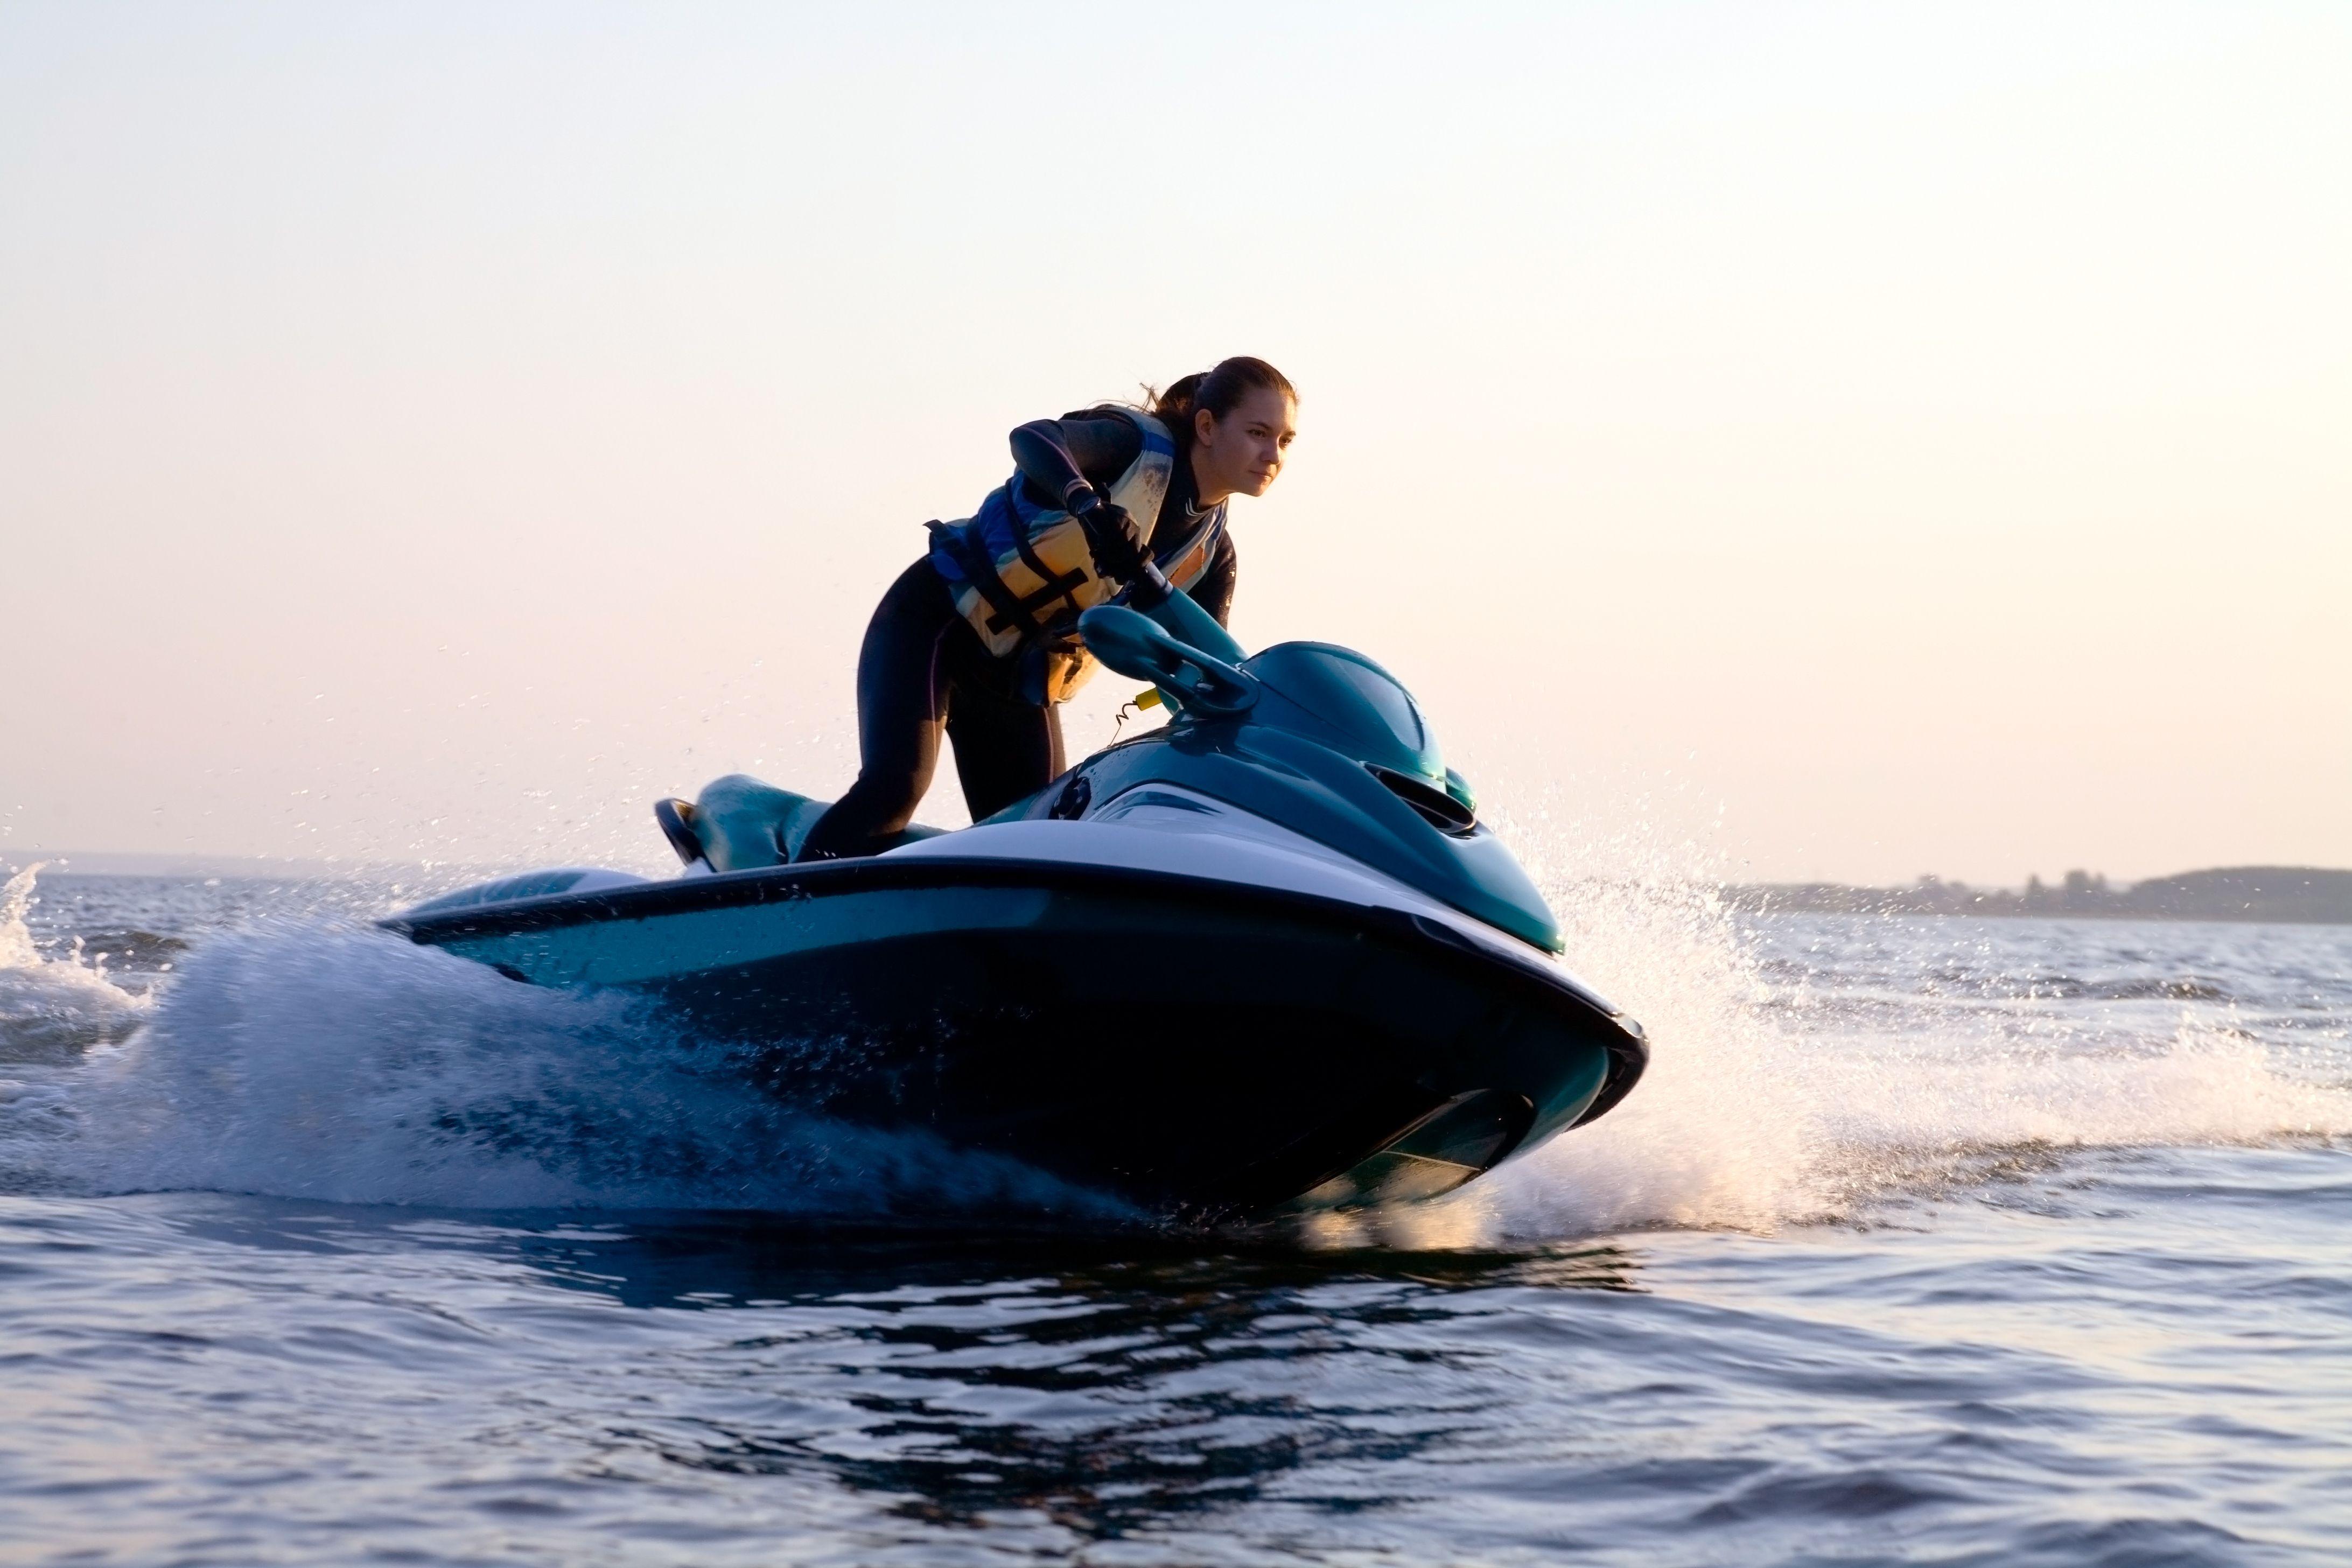 Jet Skiing In South Africa Www Dirtyboots Co Za Dirtyboots Jetskiing Meetsouthafrica Jet Ski Rentals Jet Ski Boat Rental